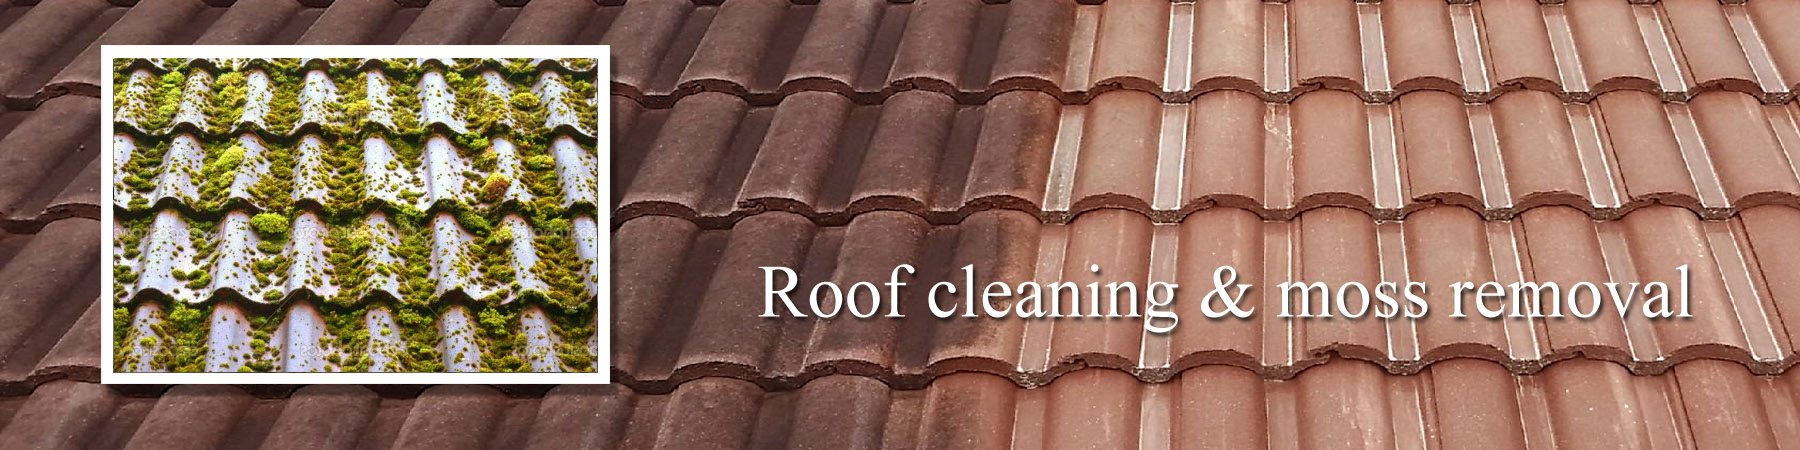 Roof cleaning Hemel Hempstead J R Cleaning